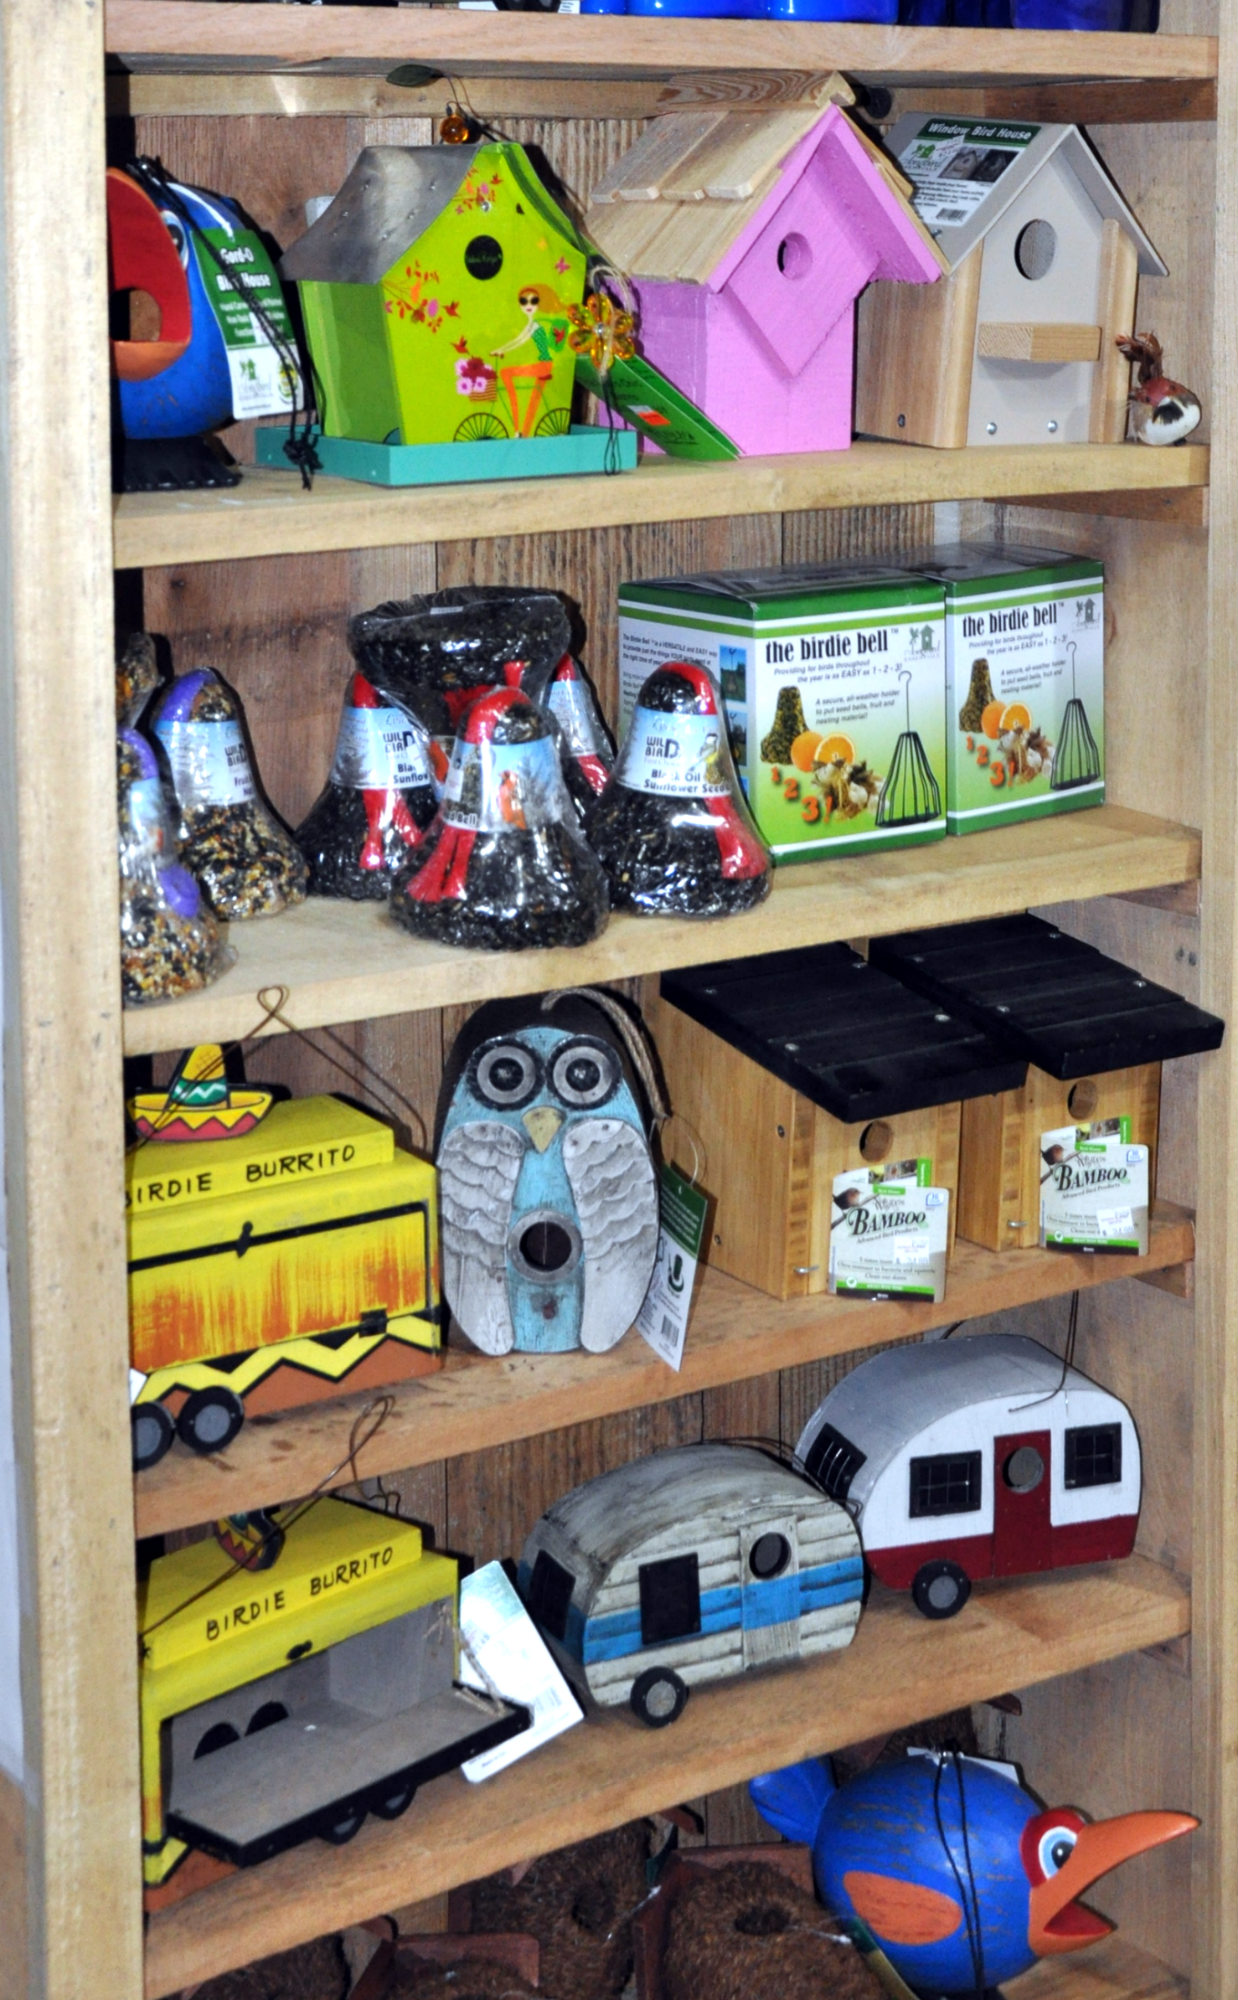 Barnes-Supply-Durham-Birdhouses.jpg